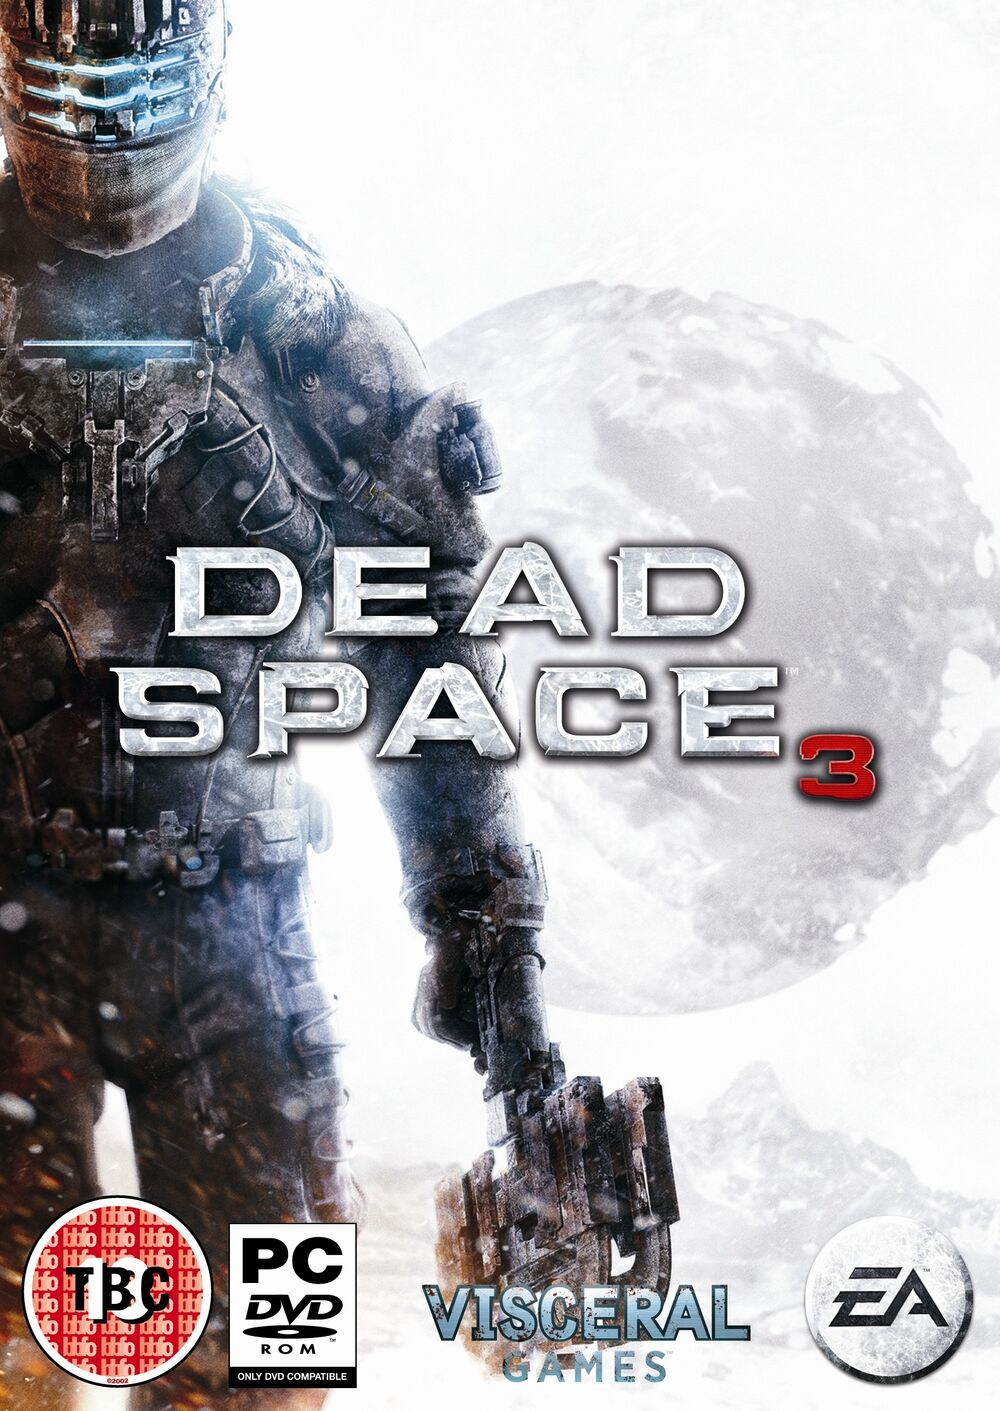 [Dossier] - Dead Space, la Série I - II - III 1000px-DS3-PC_cover